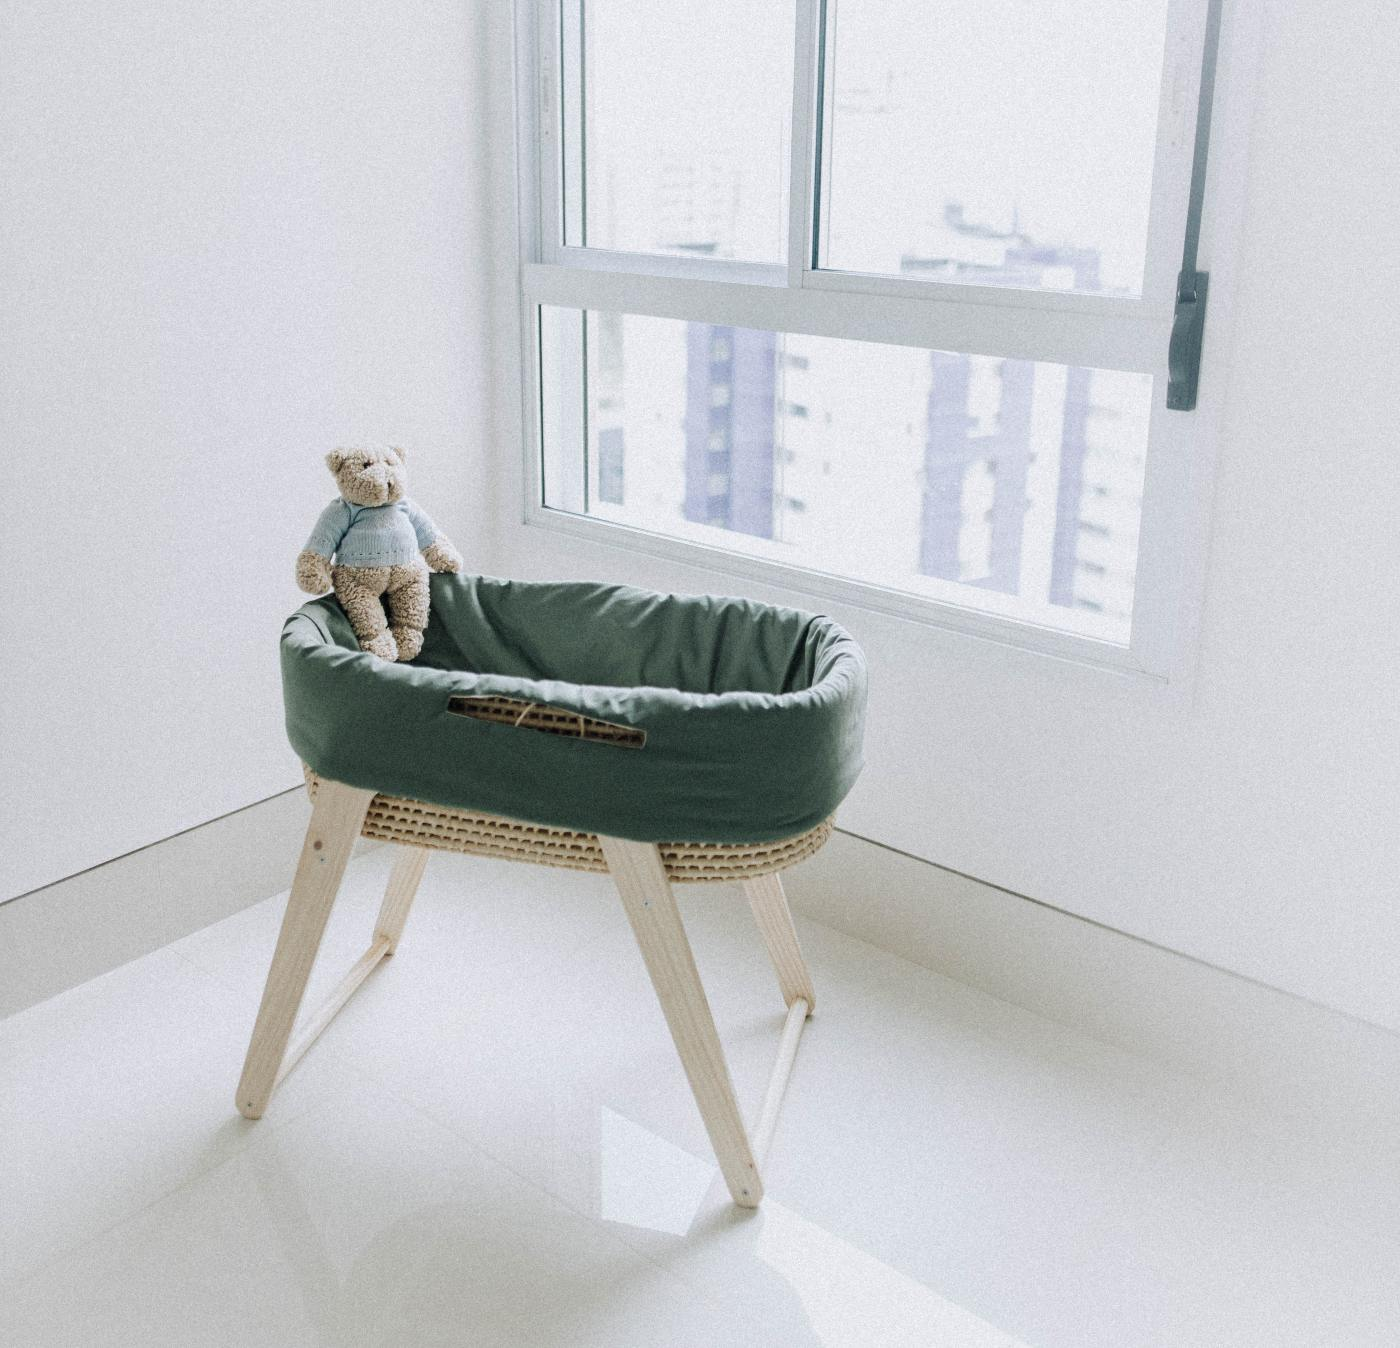 Baby doll in a cradle